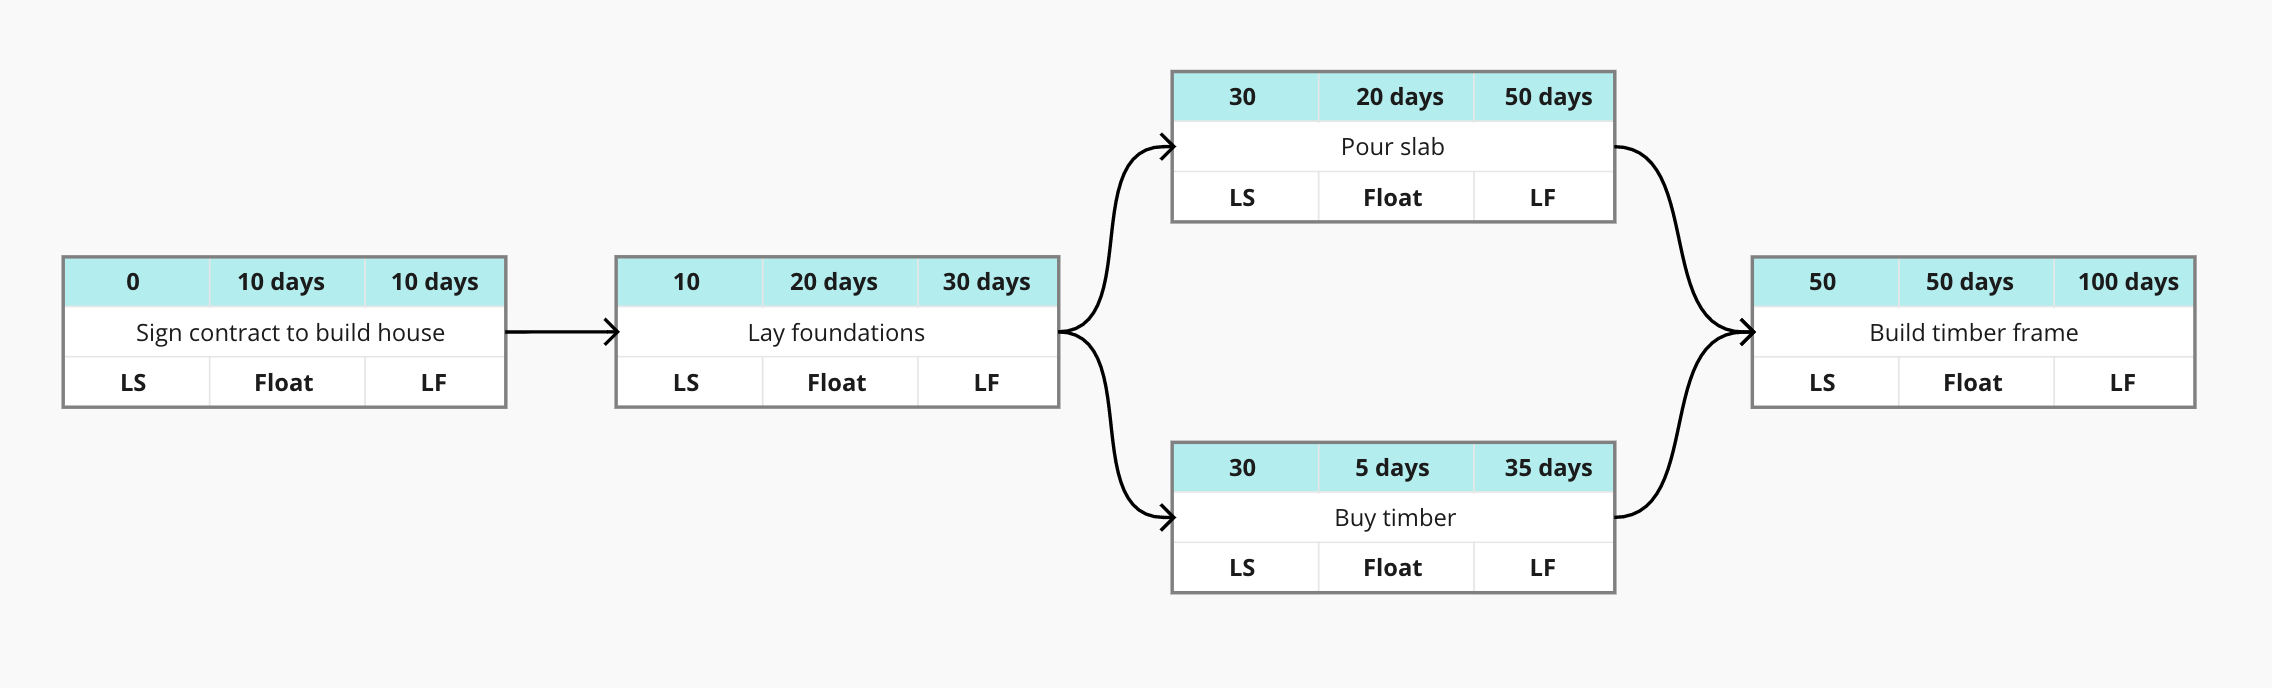 Critical path method step 5: Add ES(Early start) , duration and EF (Early finish) to all tasks